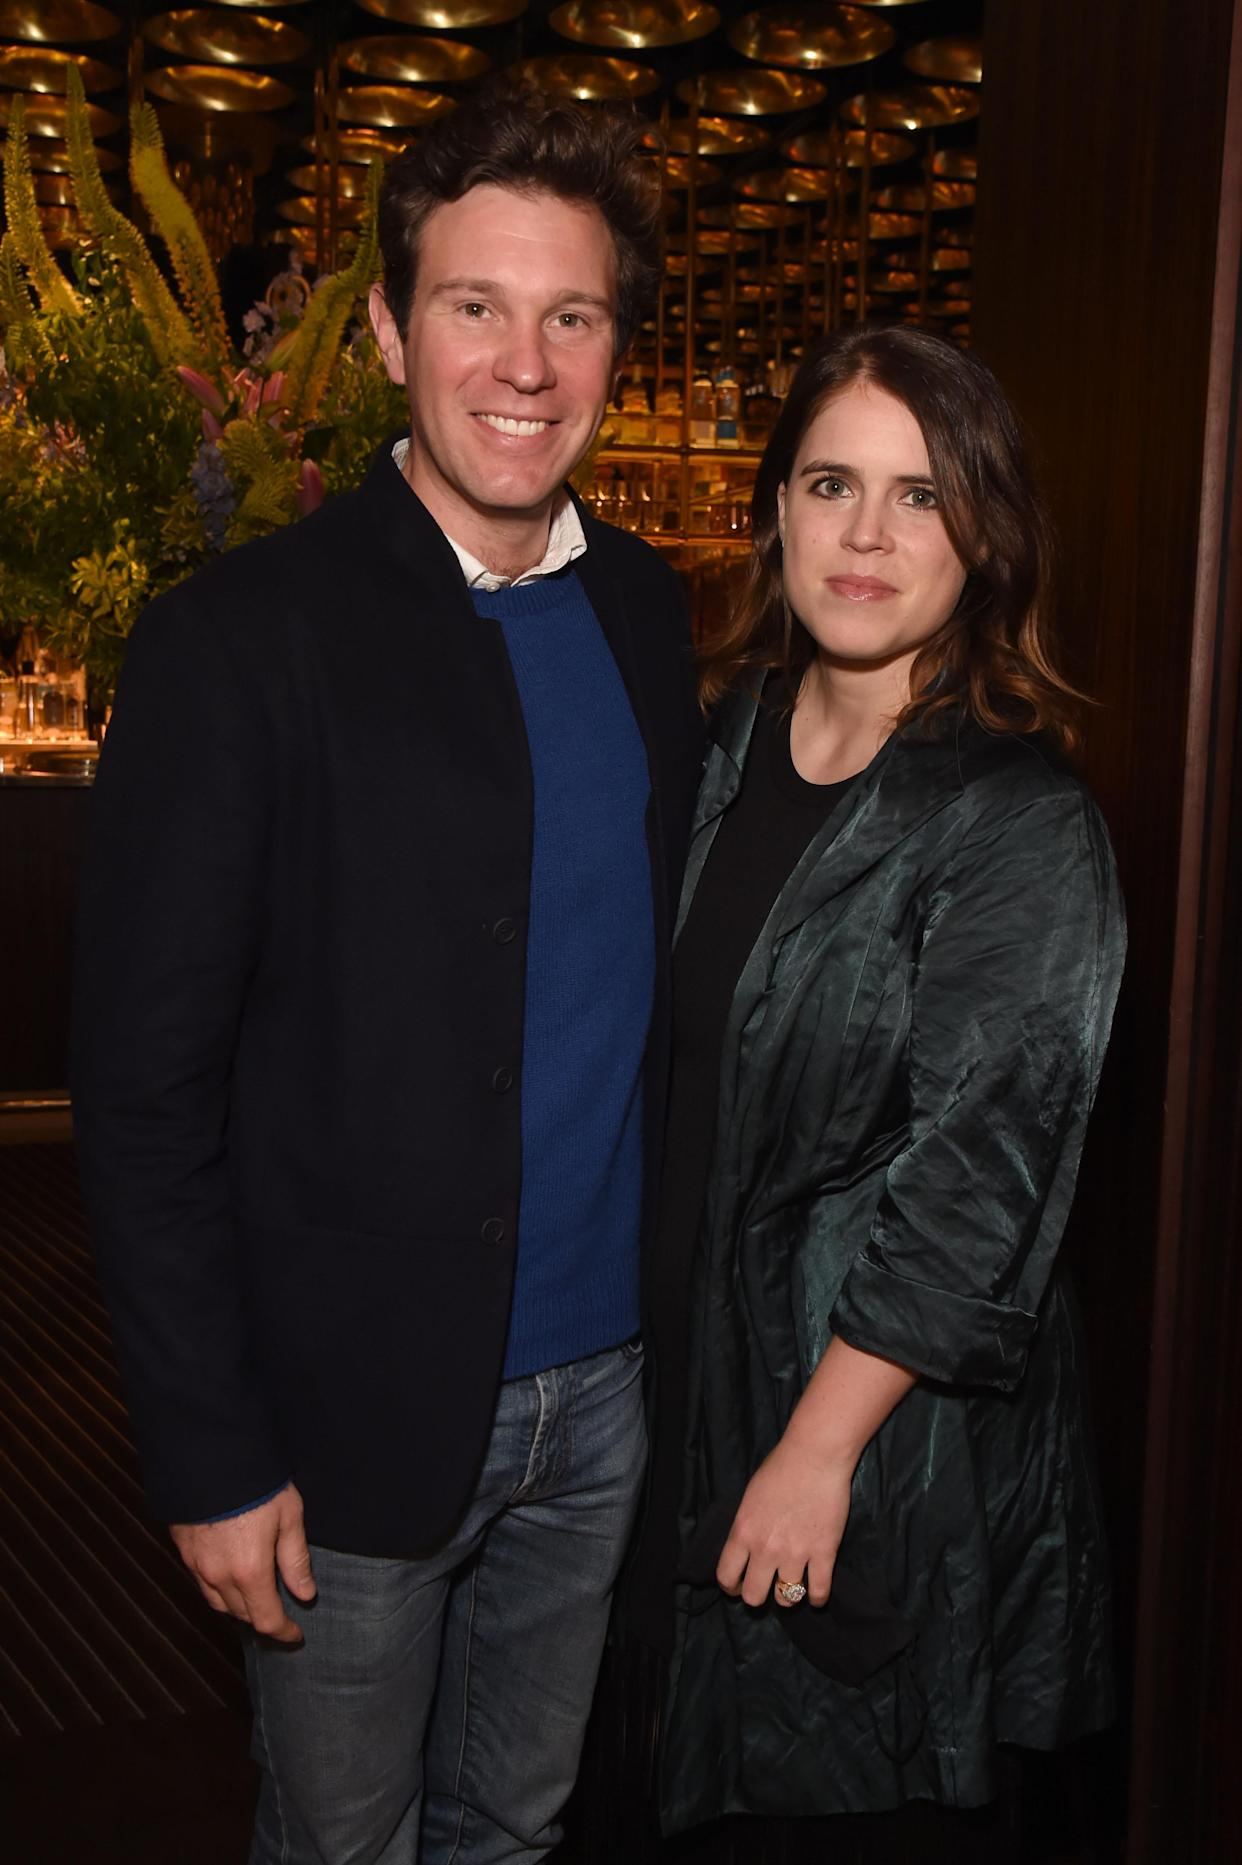 LONDON, ENGLAND - JUNE 22:  Jack Brooksbank and Princess Eugenie attend an exclusive dinner hosted by Poppy Jamie to celebrate the launch of her first book